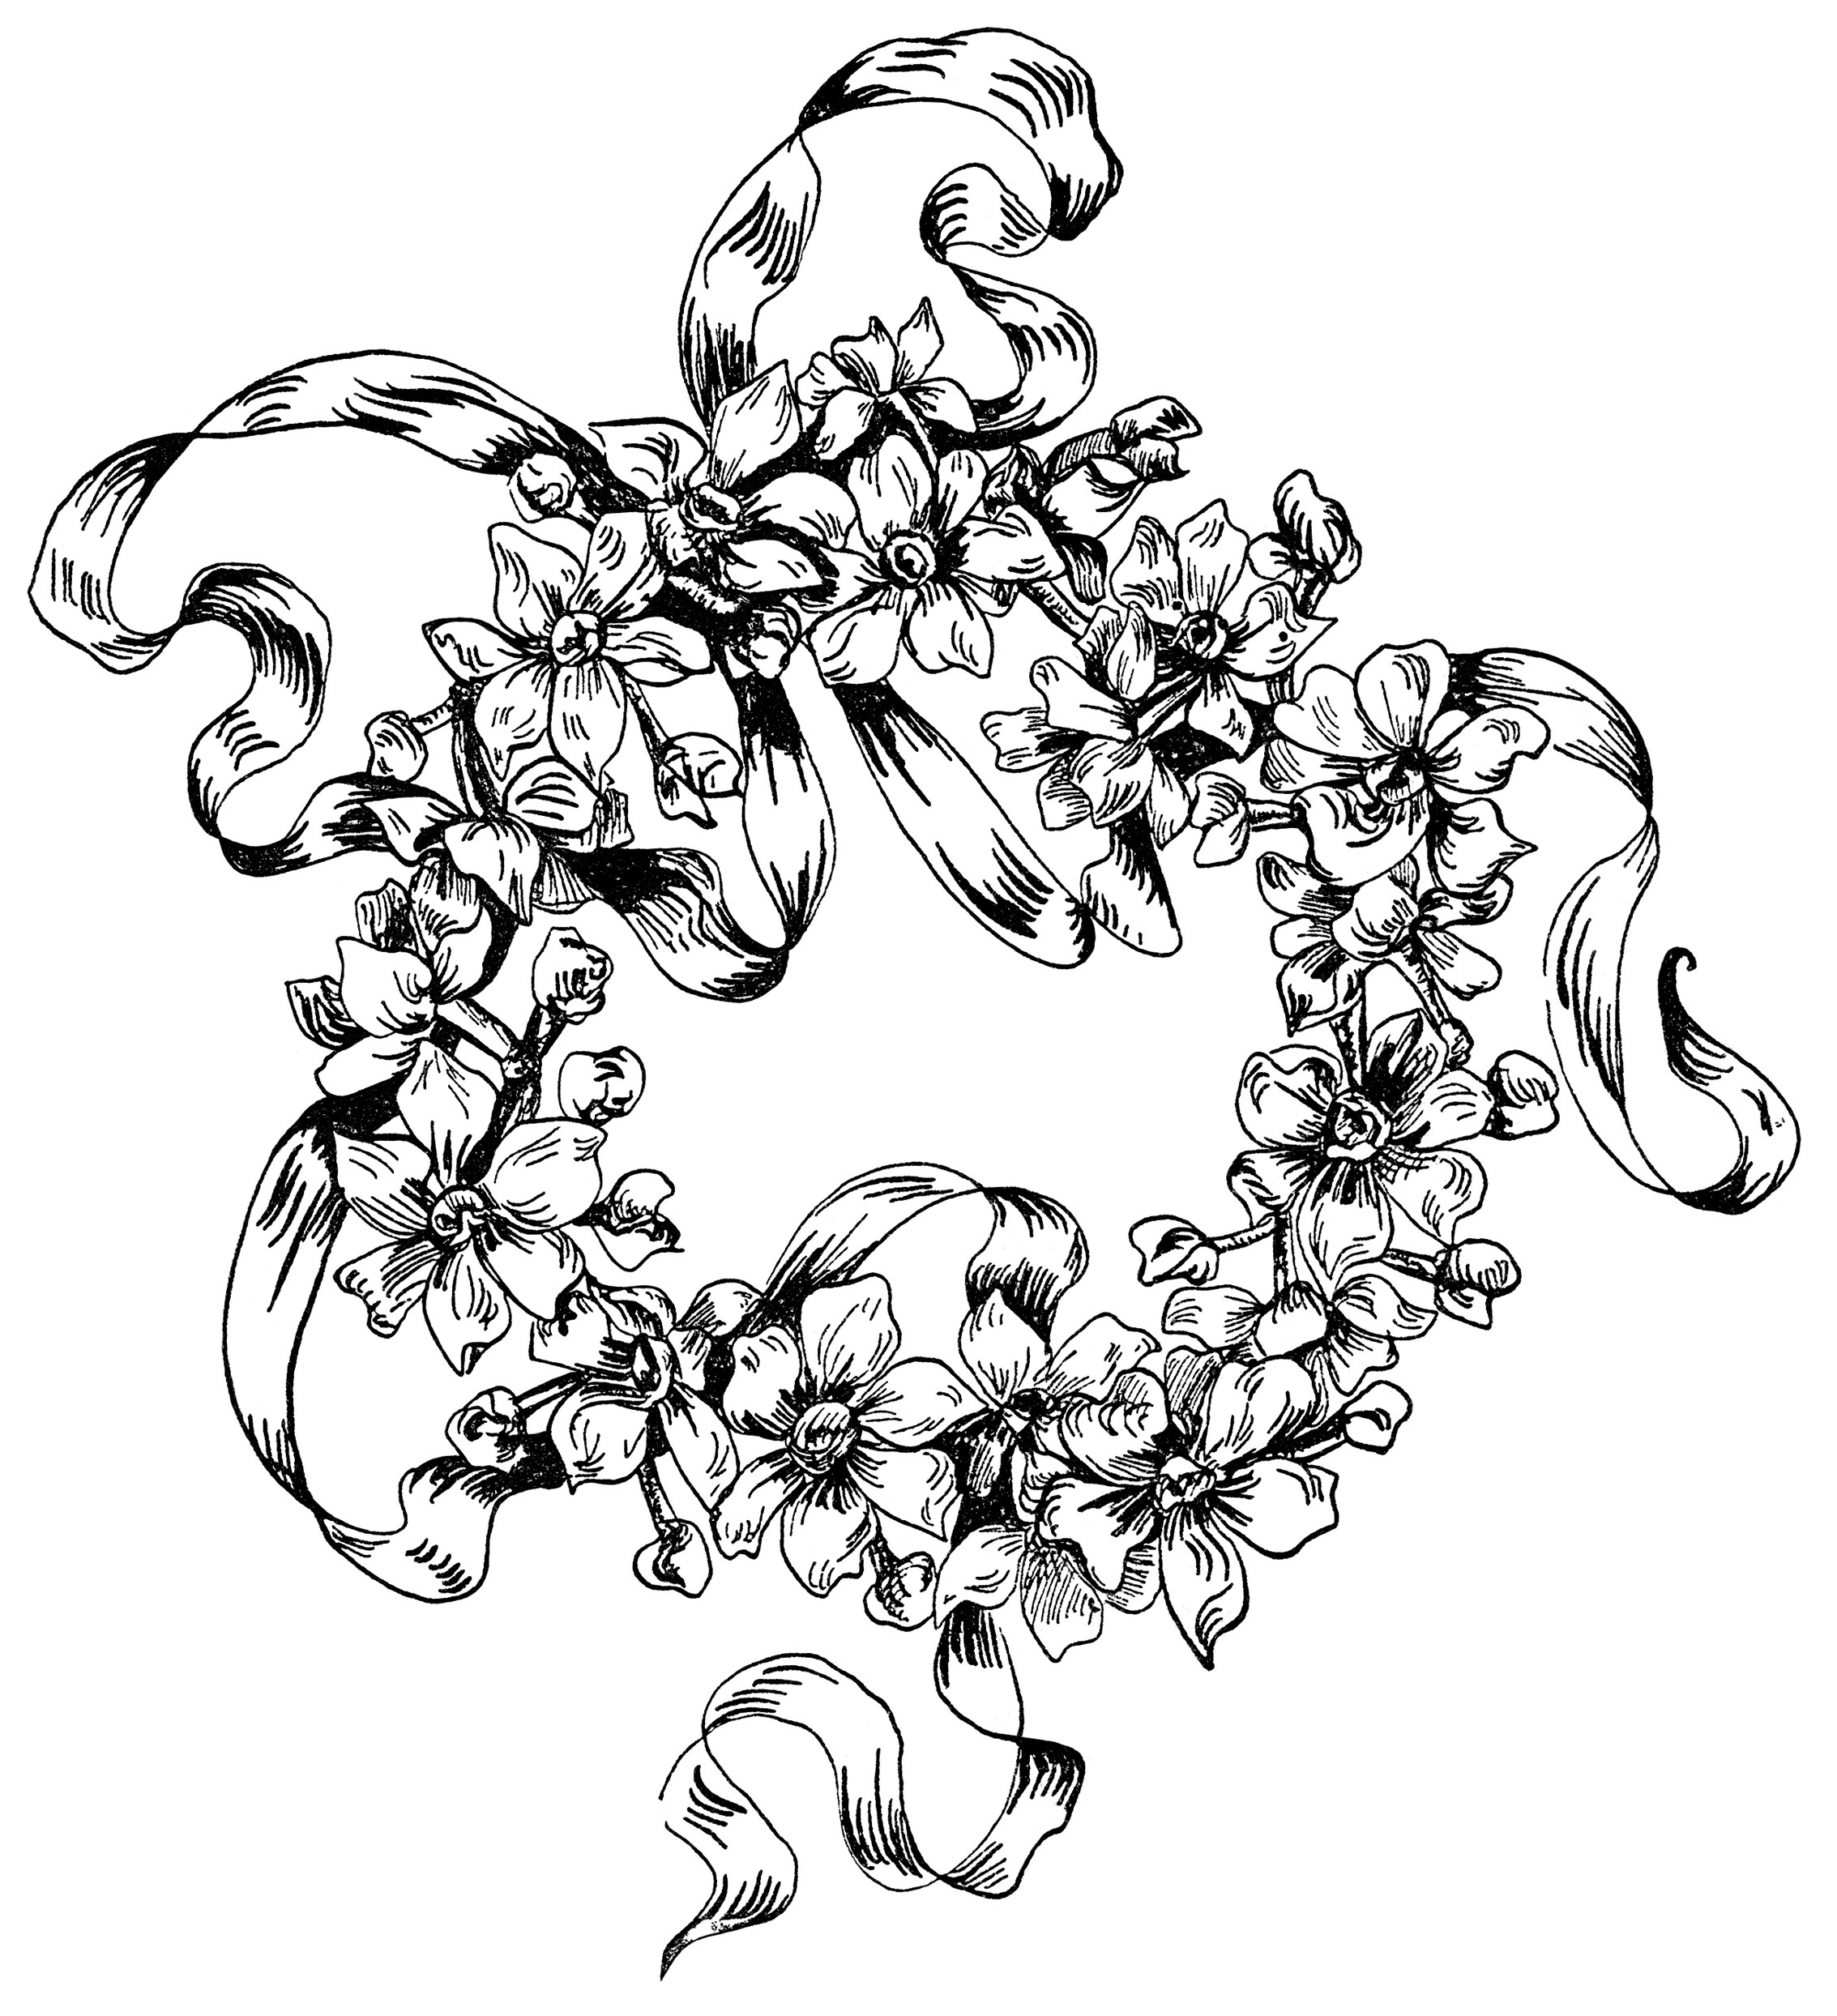 flower design illustration, black and white clipart, ornamental clip art, vintage flower drawing, floral embroidery pattern